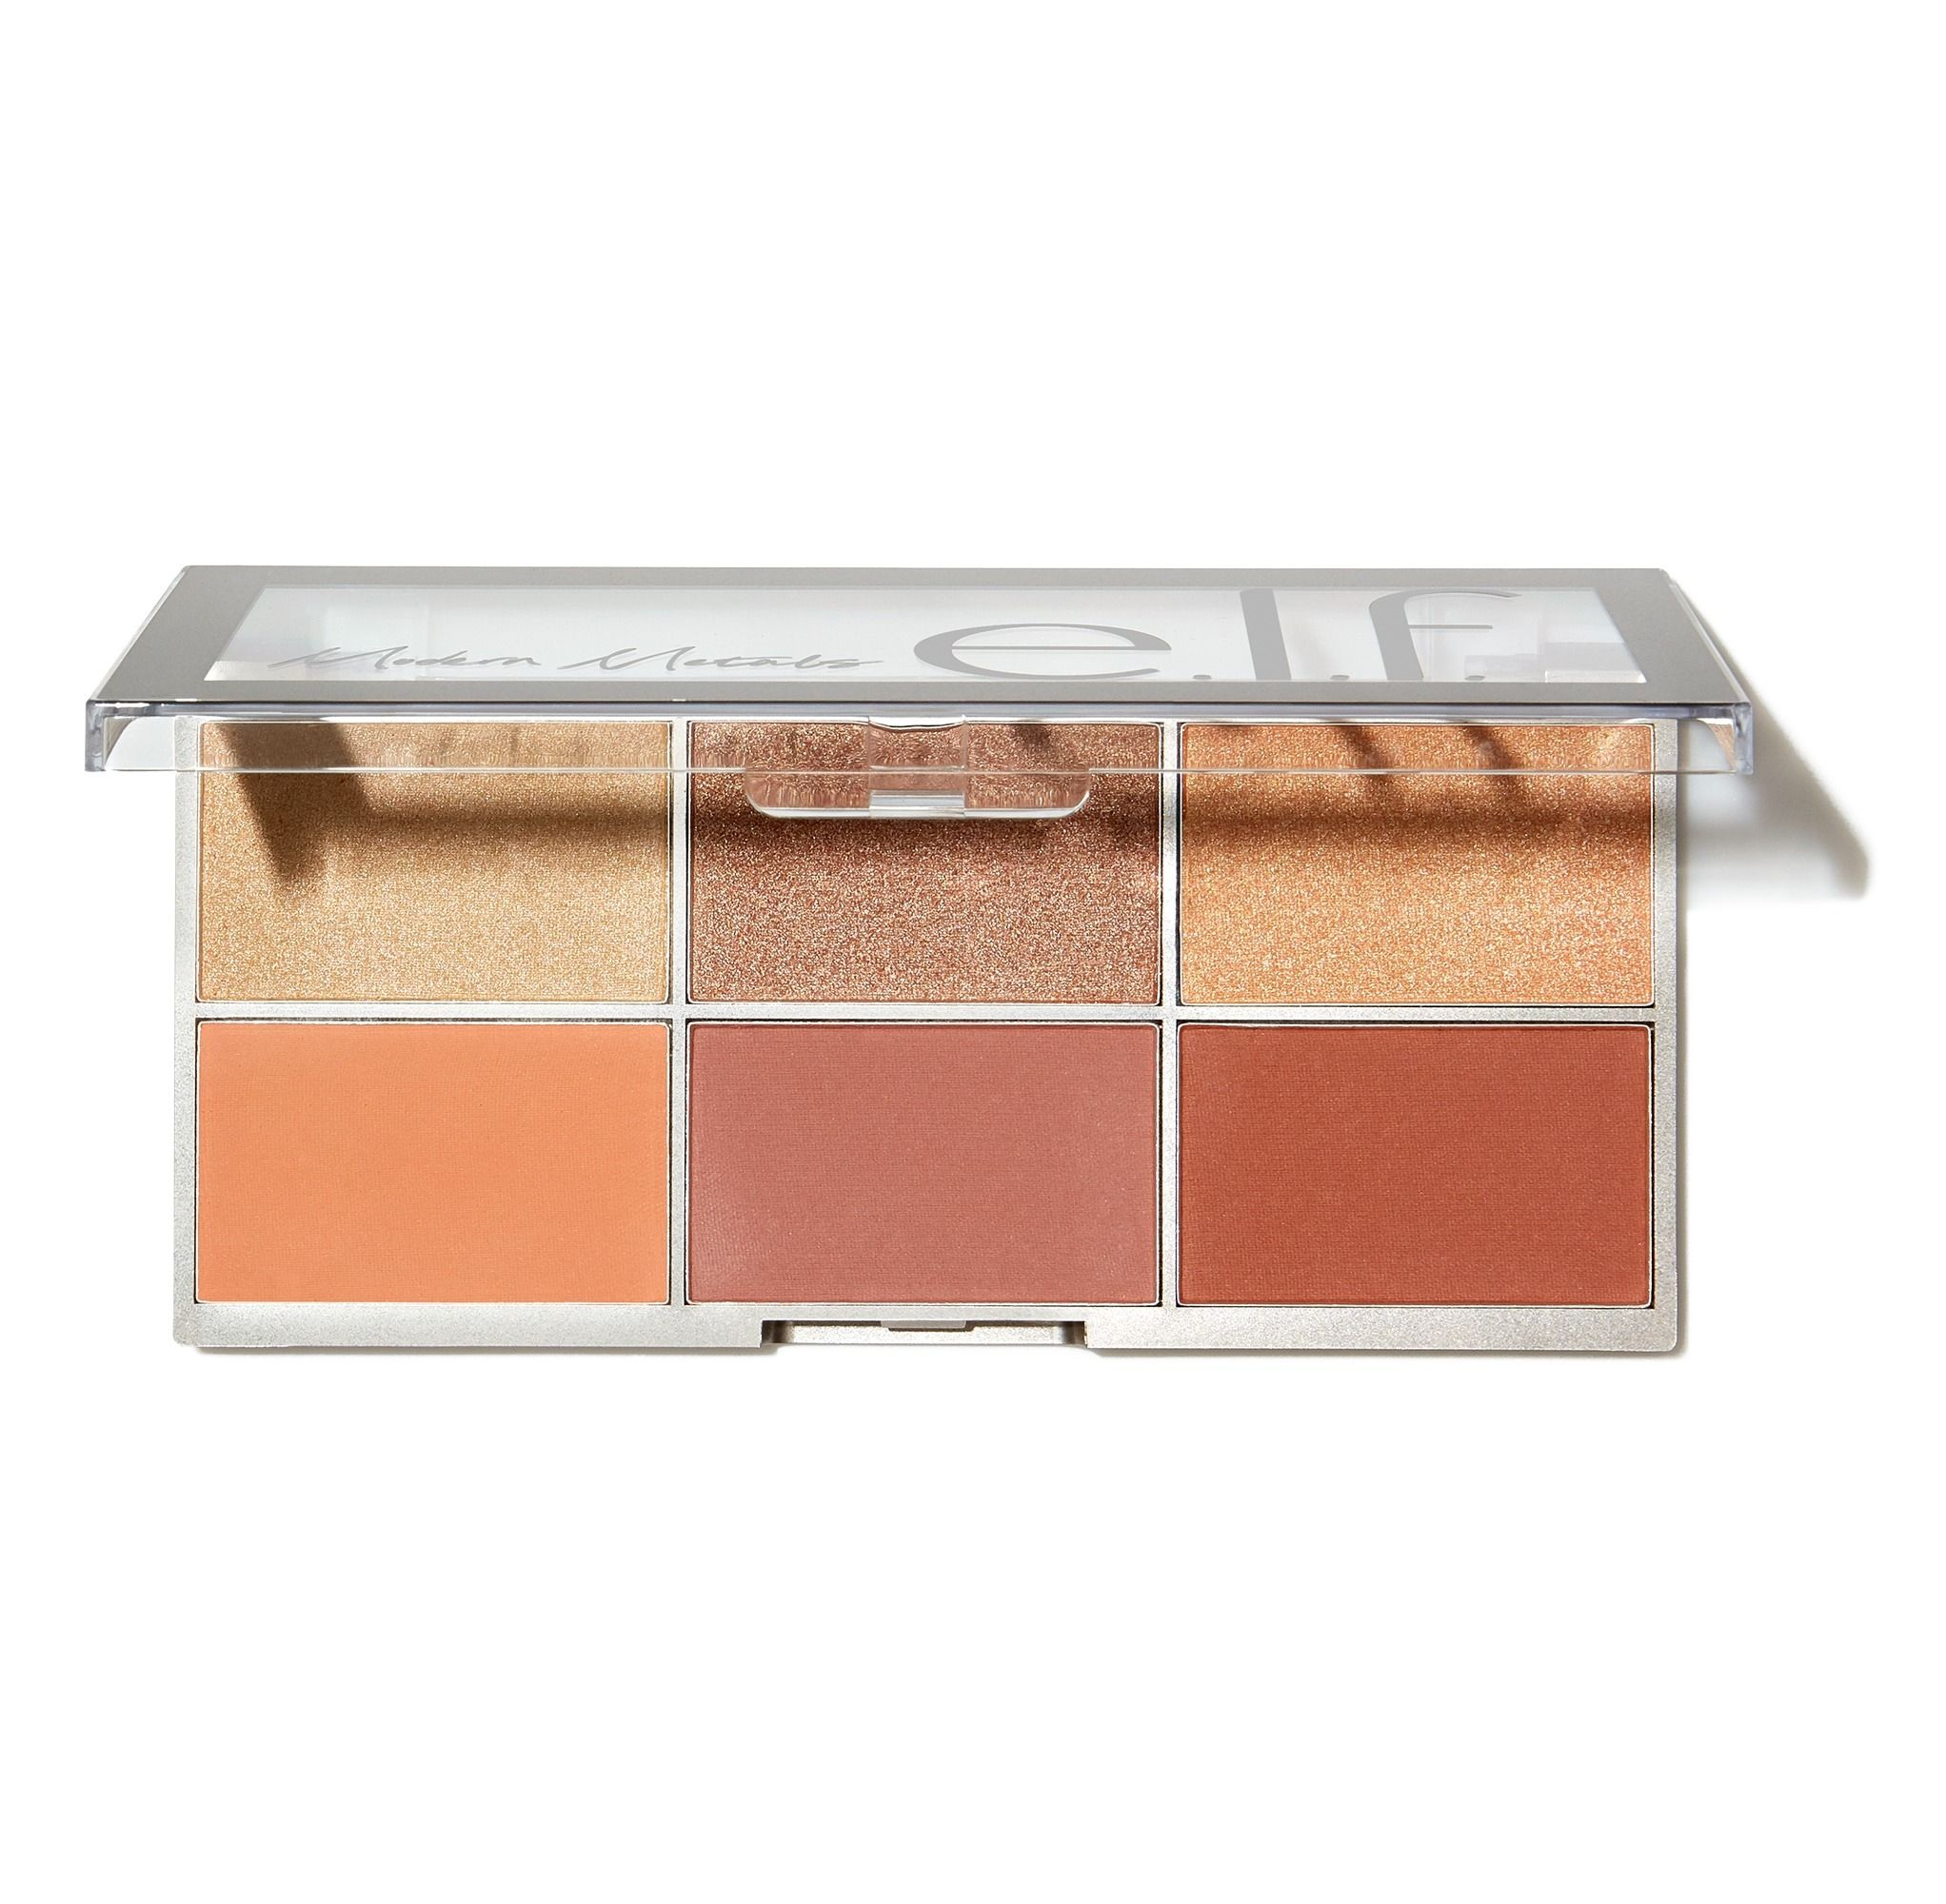 e.l.f. Cosmetics Modern Metals Blush and Highlighter Palette